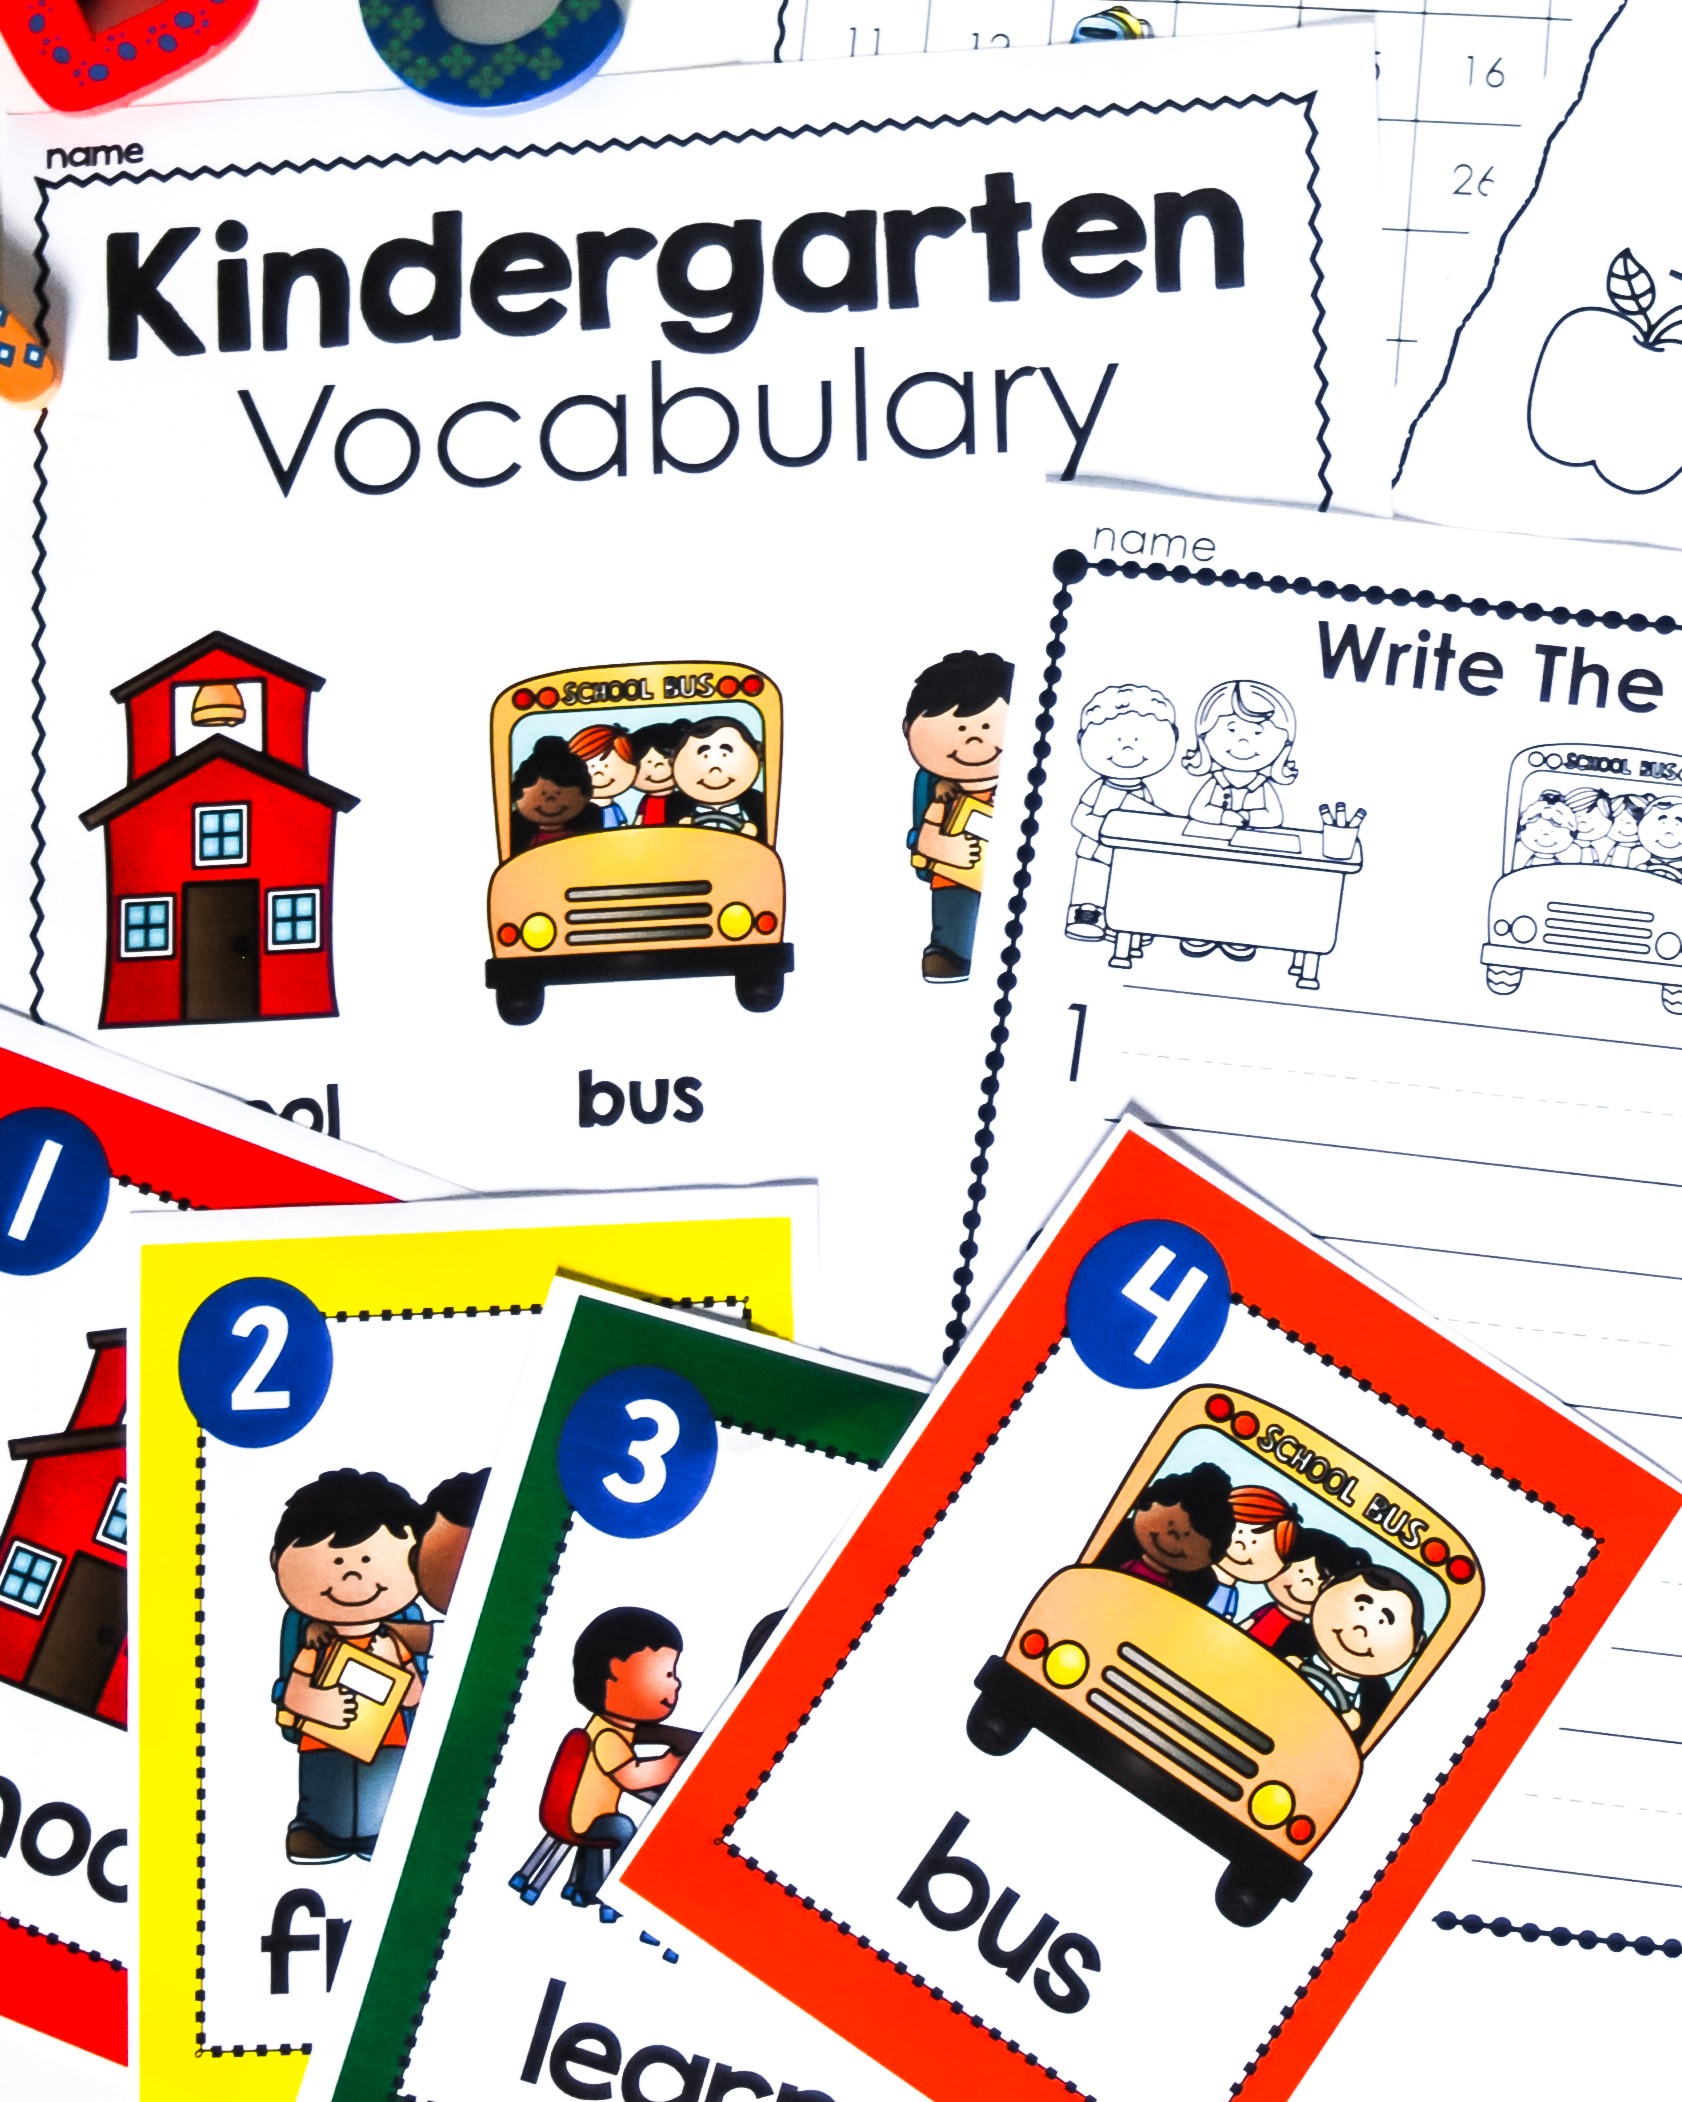 Kindergarten printables, centers, activities, games, and much more for your kindergarten class.